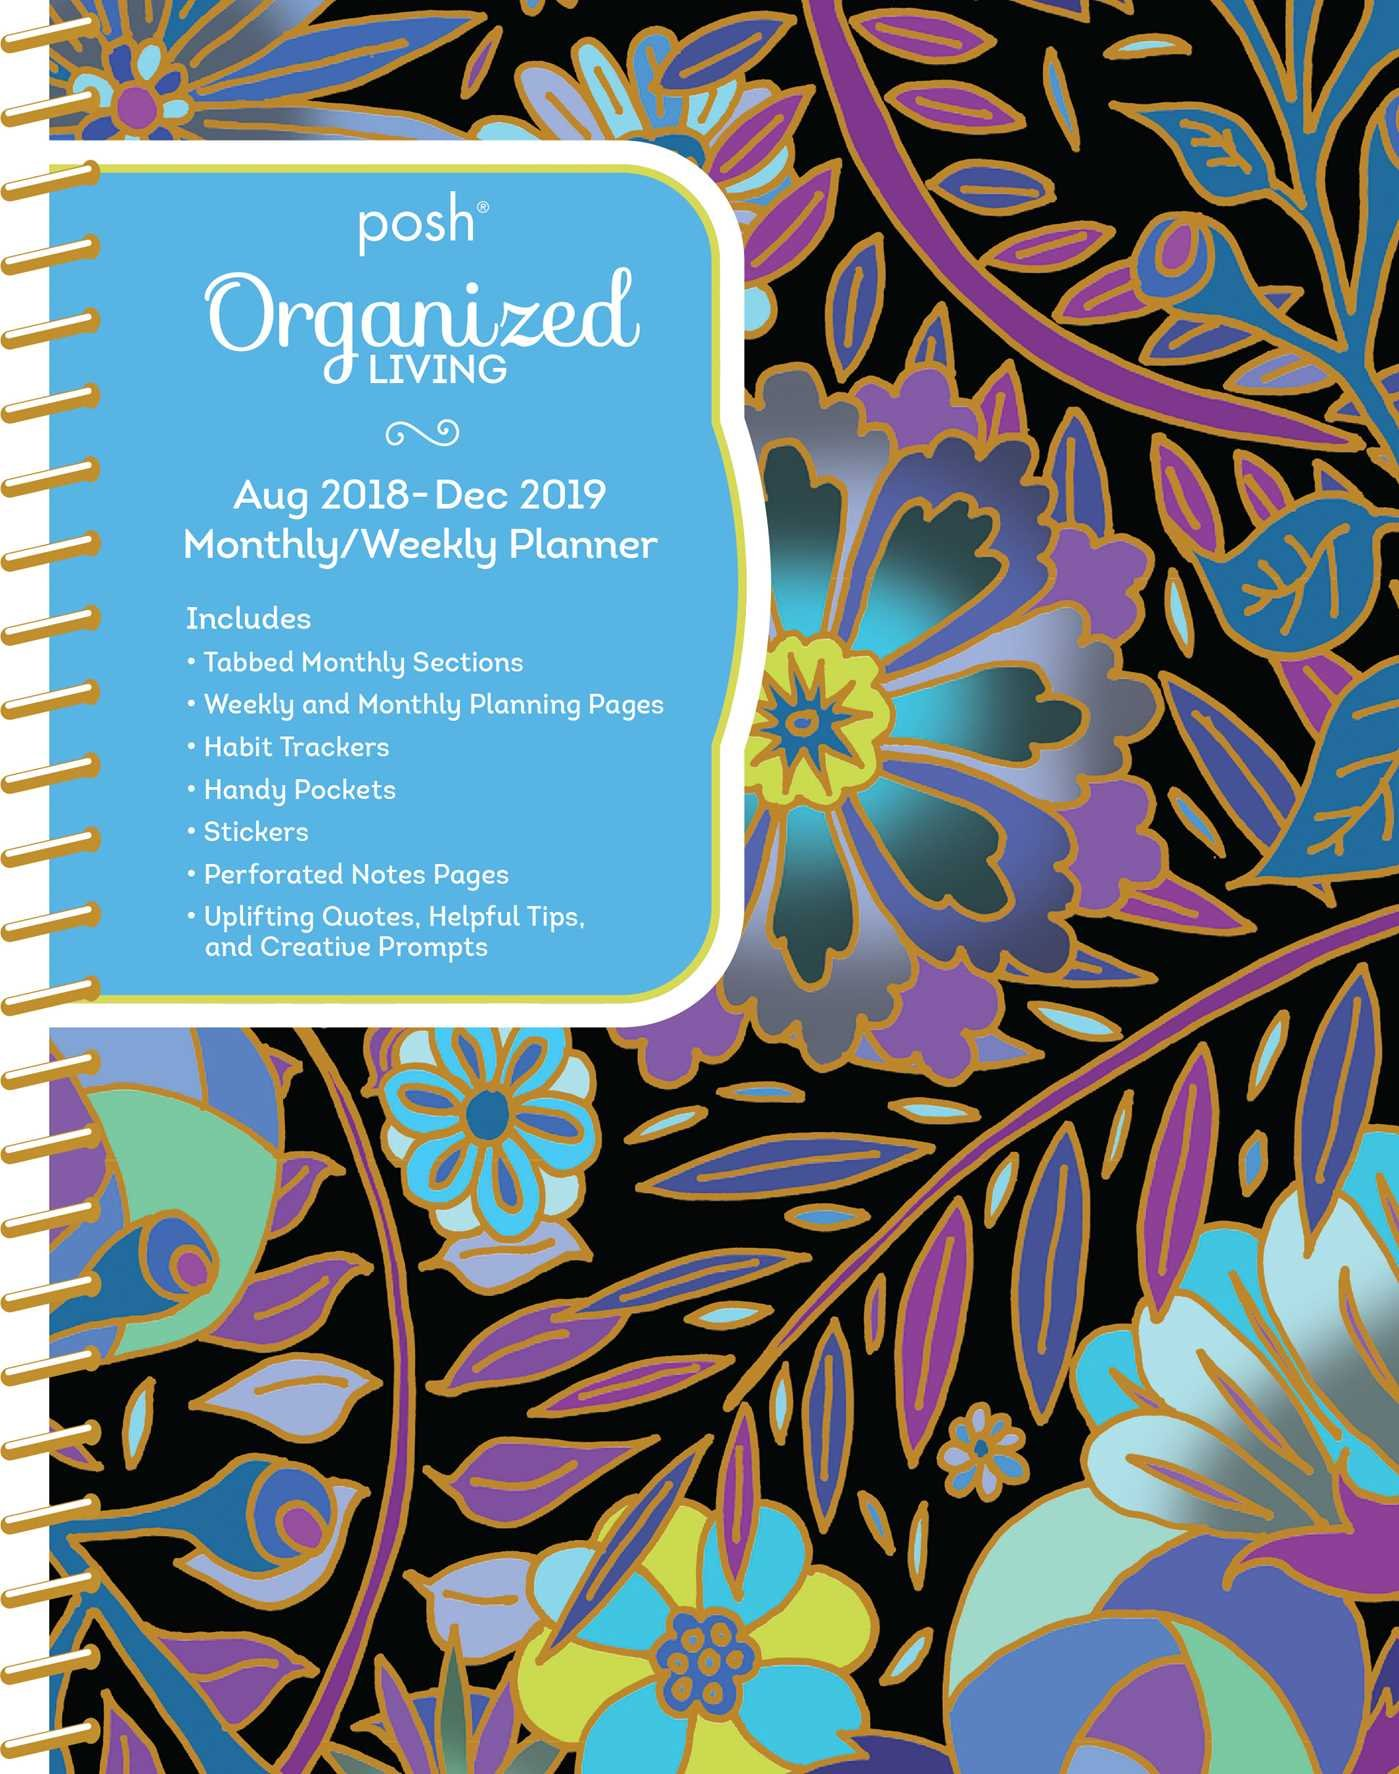 Download Posh: Organized Living 2018-2019 Monthly/Weekly Planning Calendar: Midnight Garden pdf